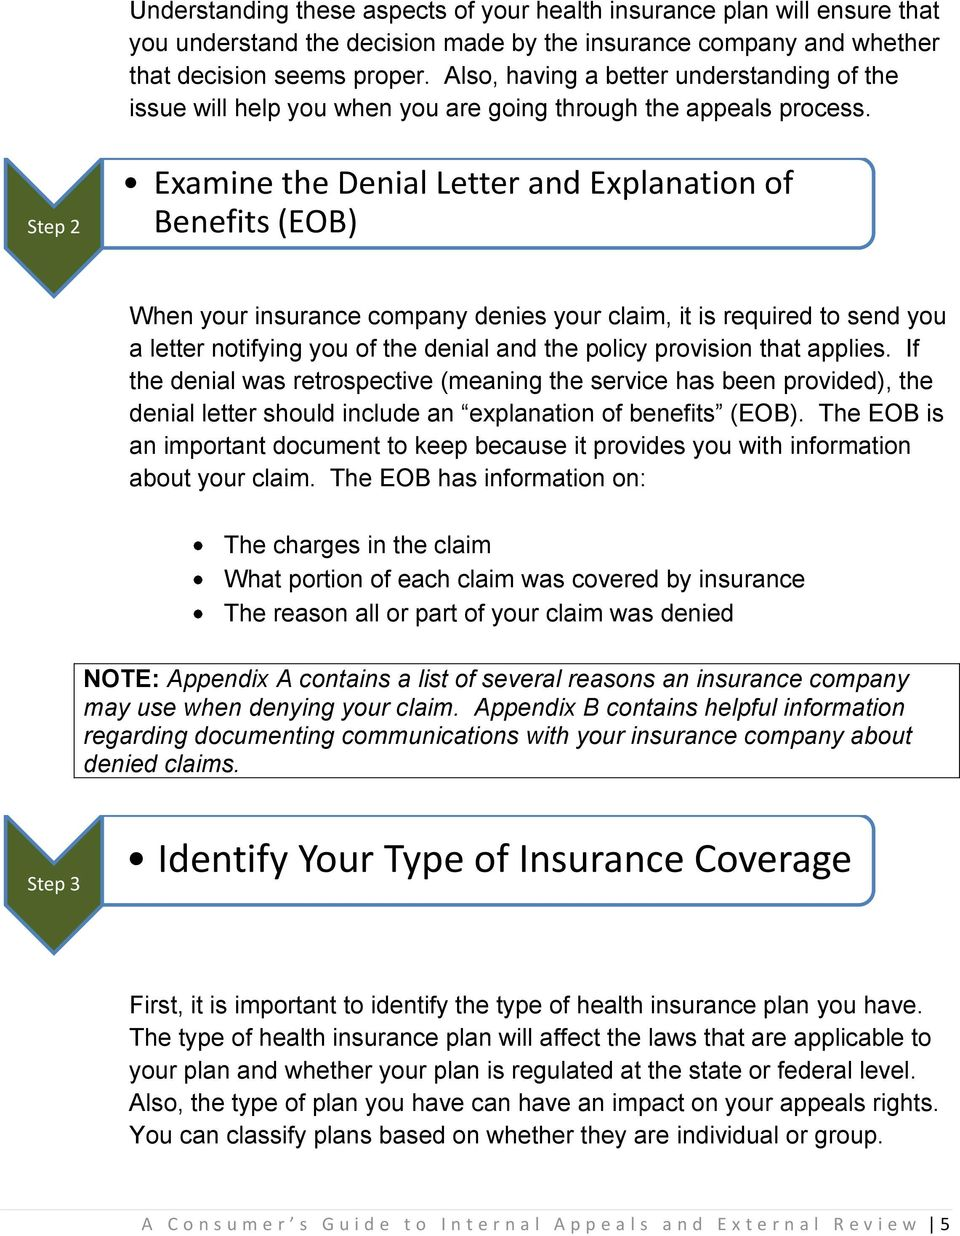 Step 2 Examine the Denial Letter and Explanation of Benefits (EOB) When your insurance company denies your claim, it is required to send you a letter notifying you of the denial and the policy